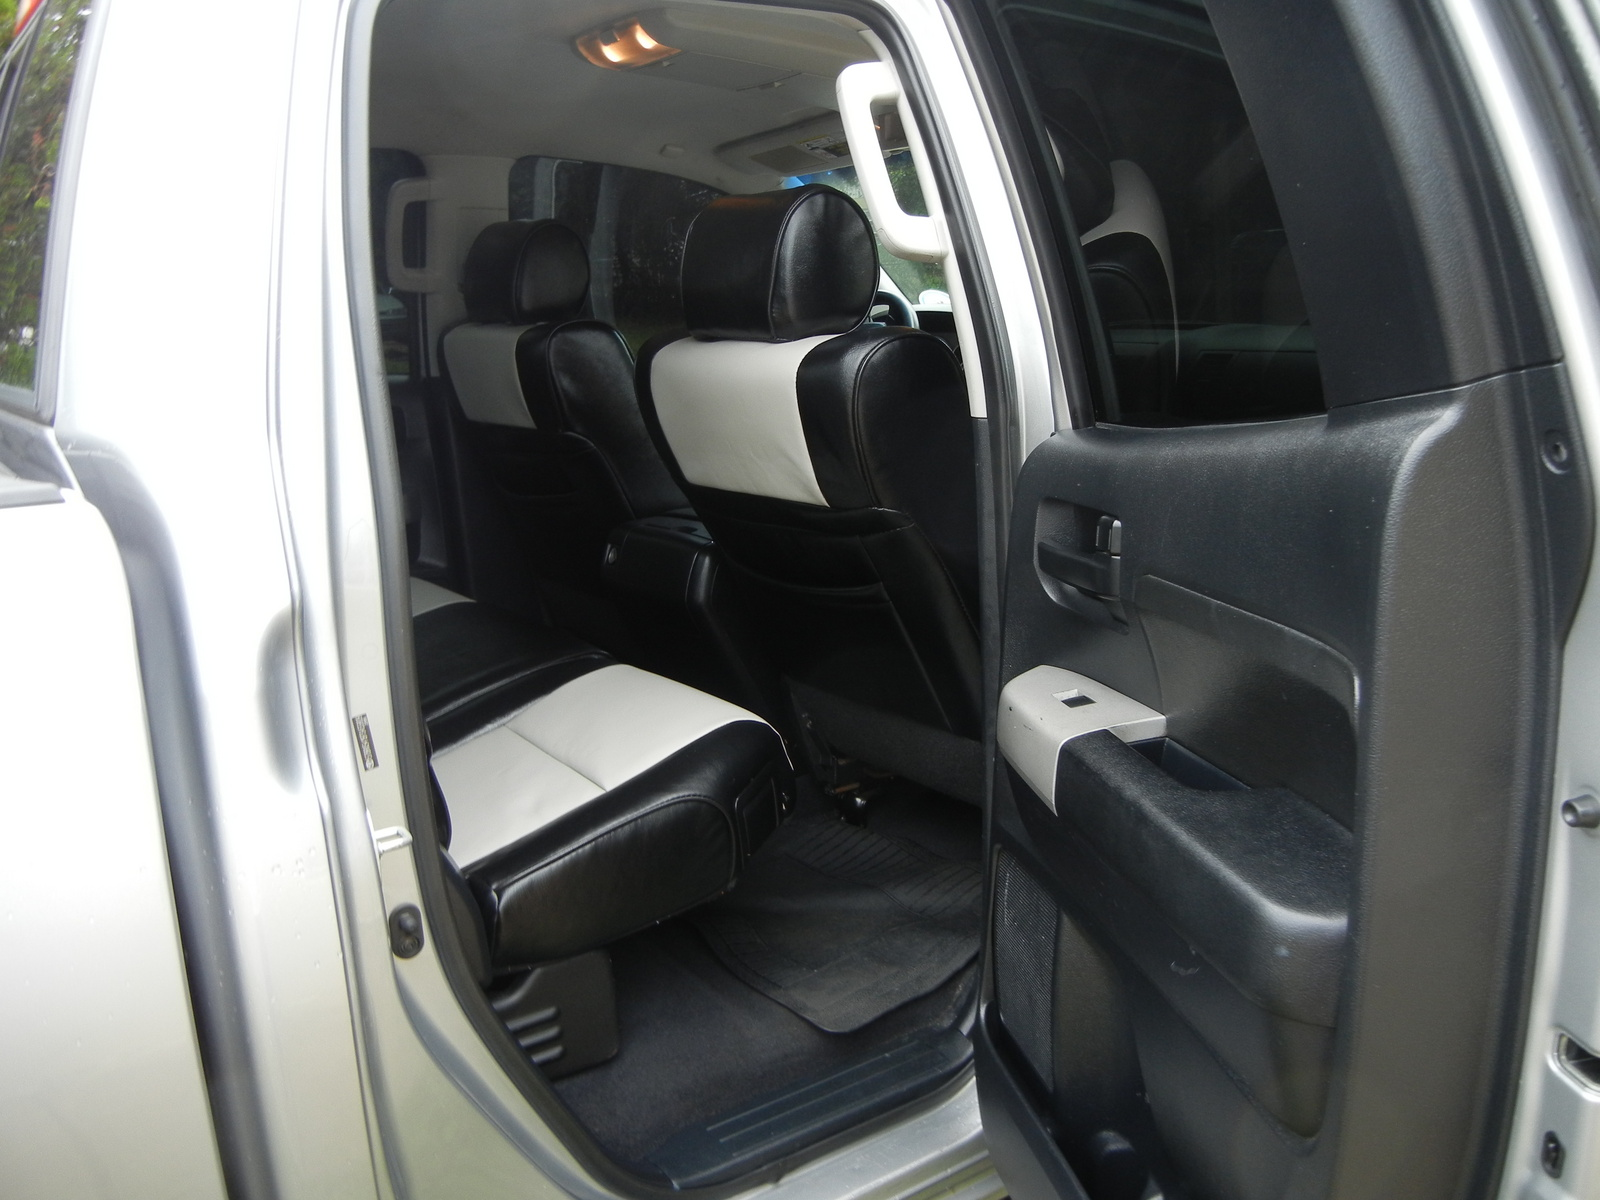 2011 Toyota Tundra Detailed Pricing And Specifications ...